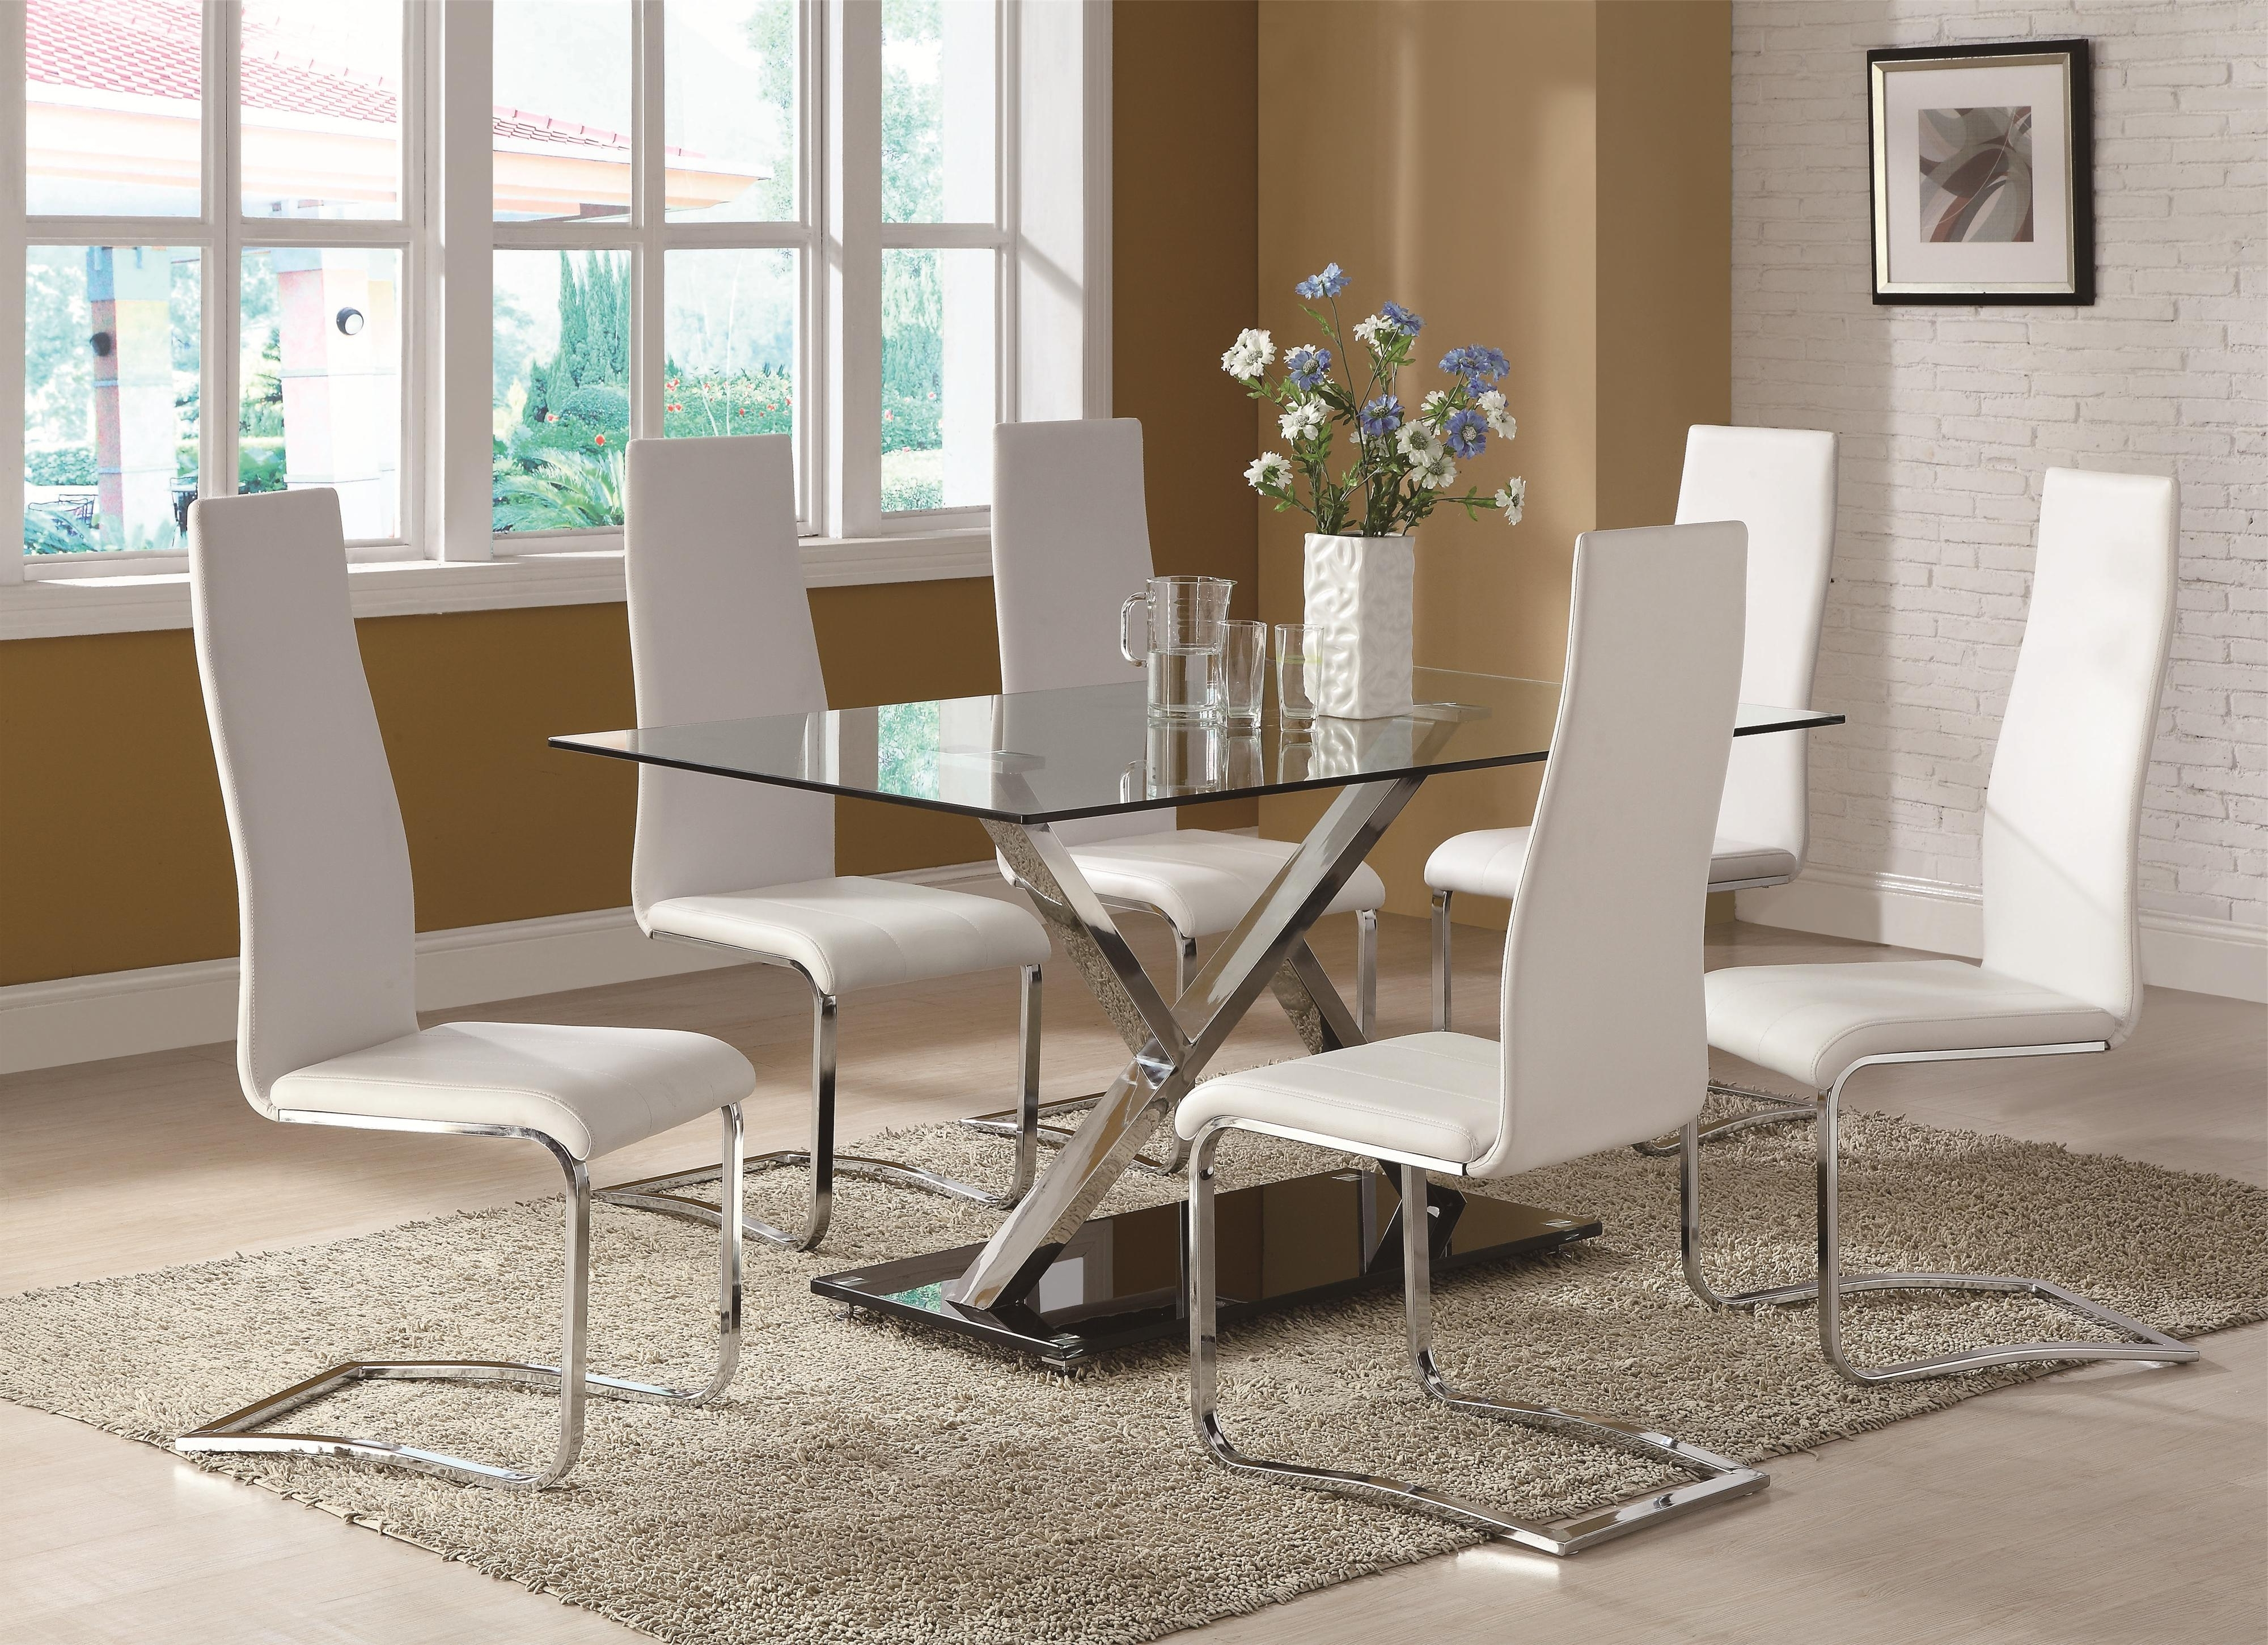 Extraordinary Chrome Dining Room Chairs In Probably Fantastic Pertaining To Latest Chrome Dining Room Chairs (Gallery 15 of 25)